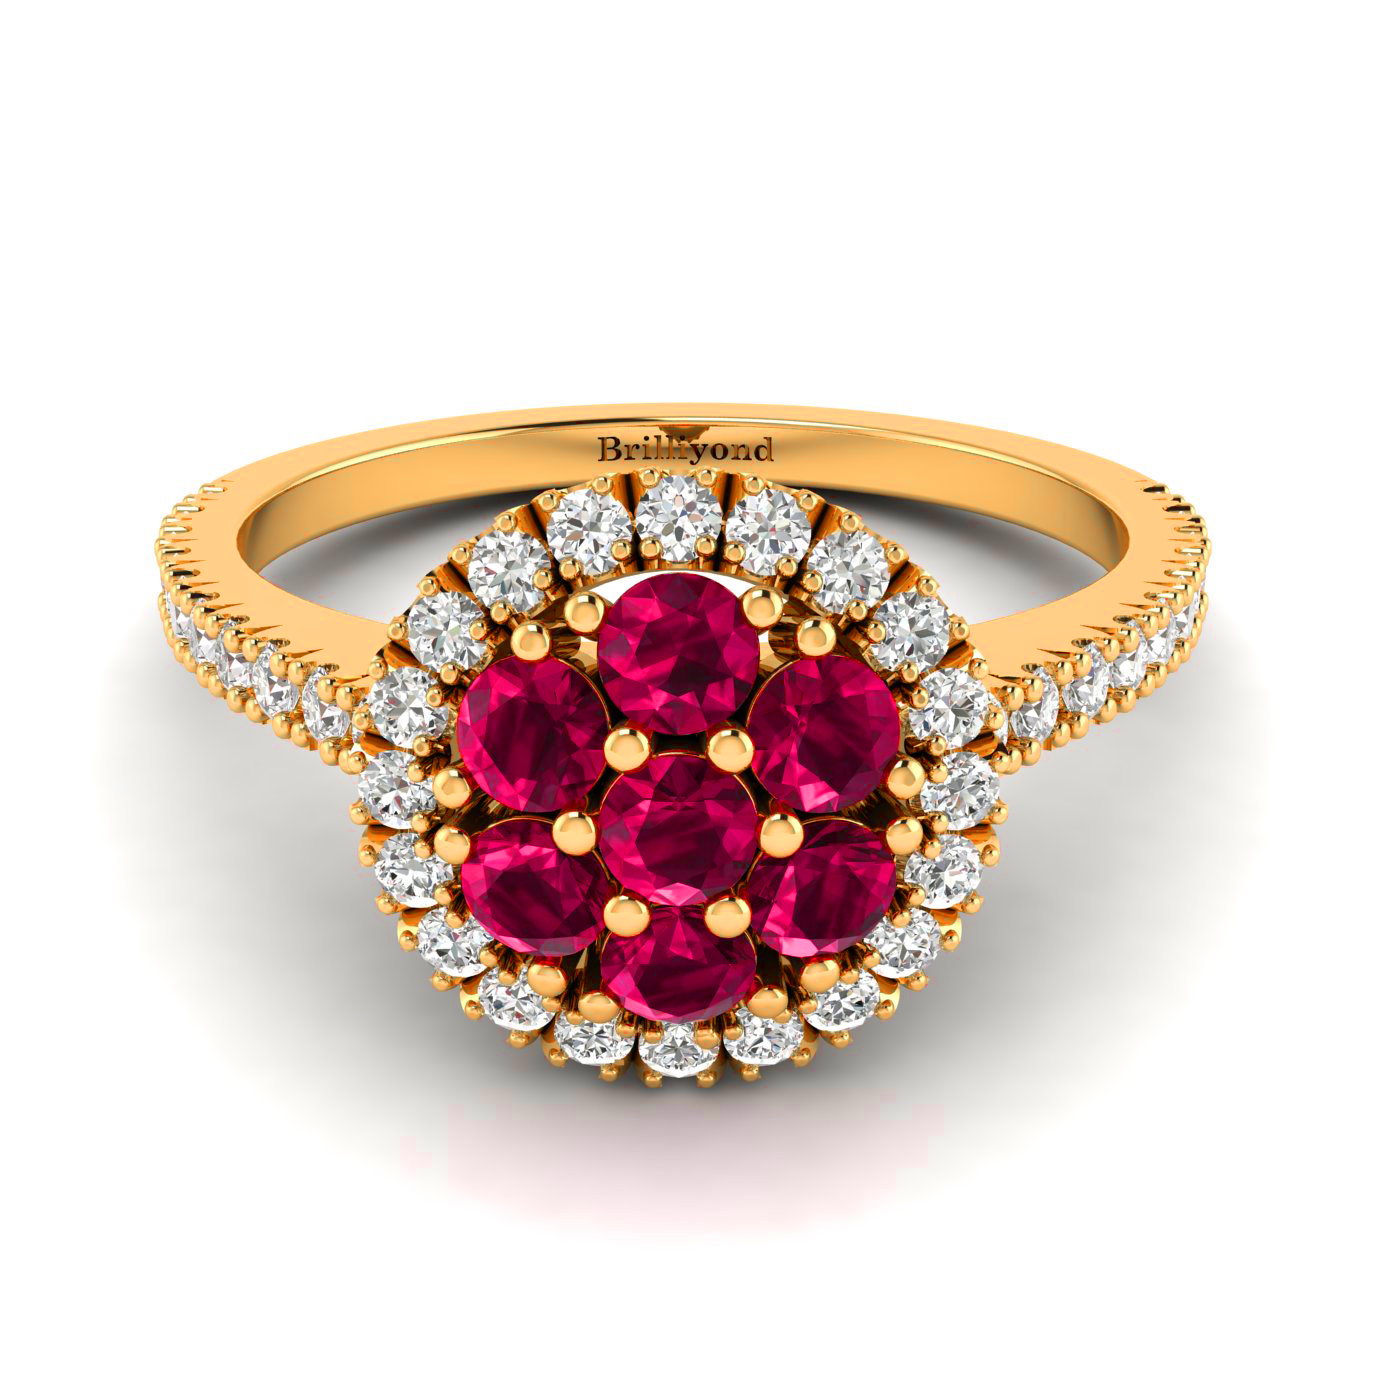 7 x 2.5mm Ruby and 40 x Accent Diamonds on 18k Yellow Gold Band